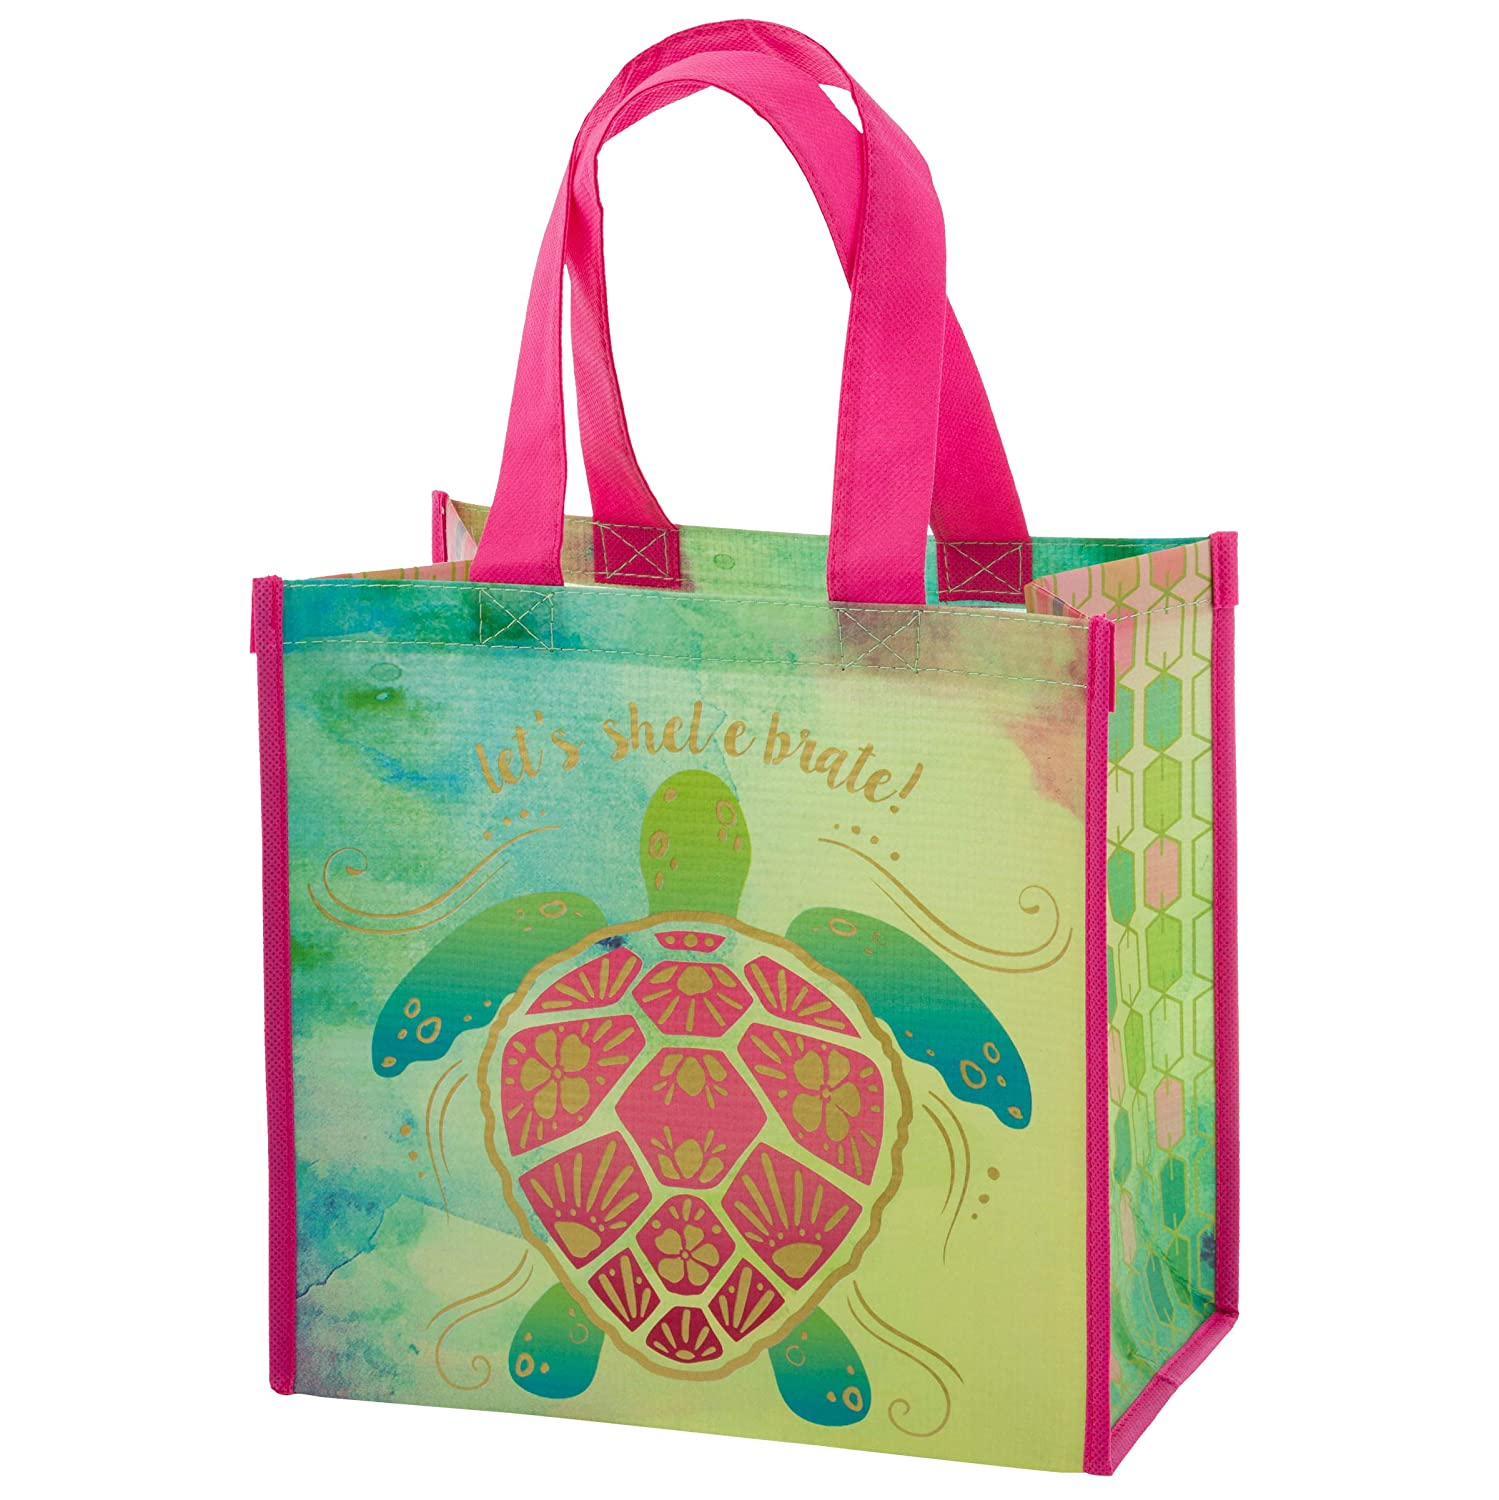 Karma Gifts Medium Gift Bag, Accessory, Turtle, No Size Tony Bennett Stephen Joseph Inc. KA203175